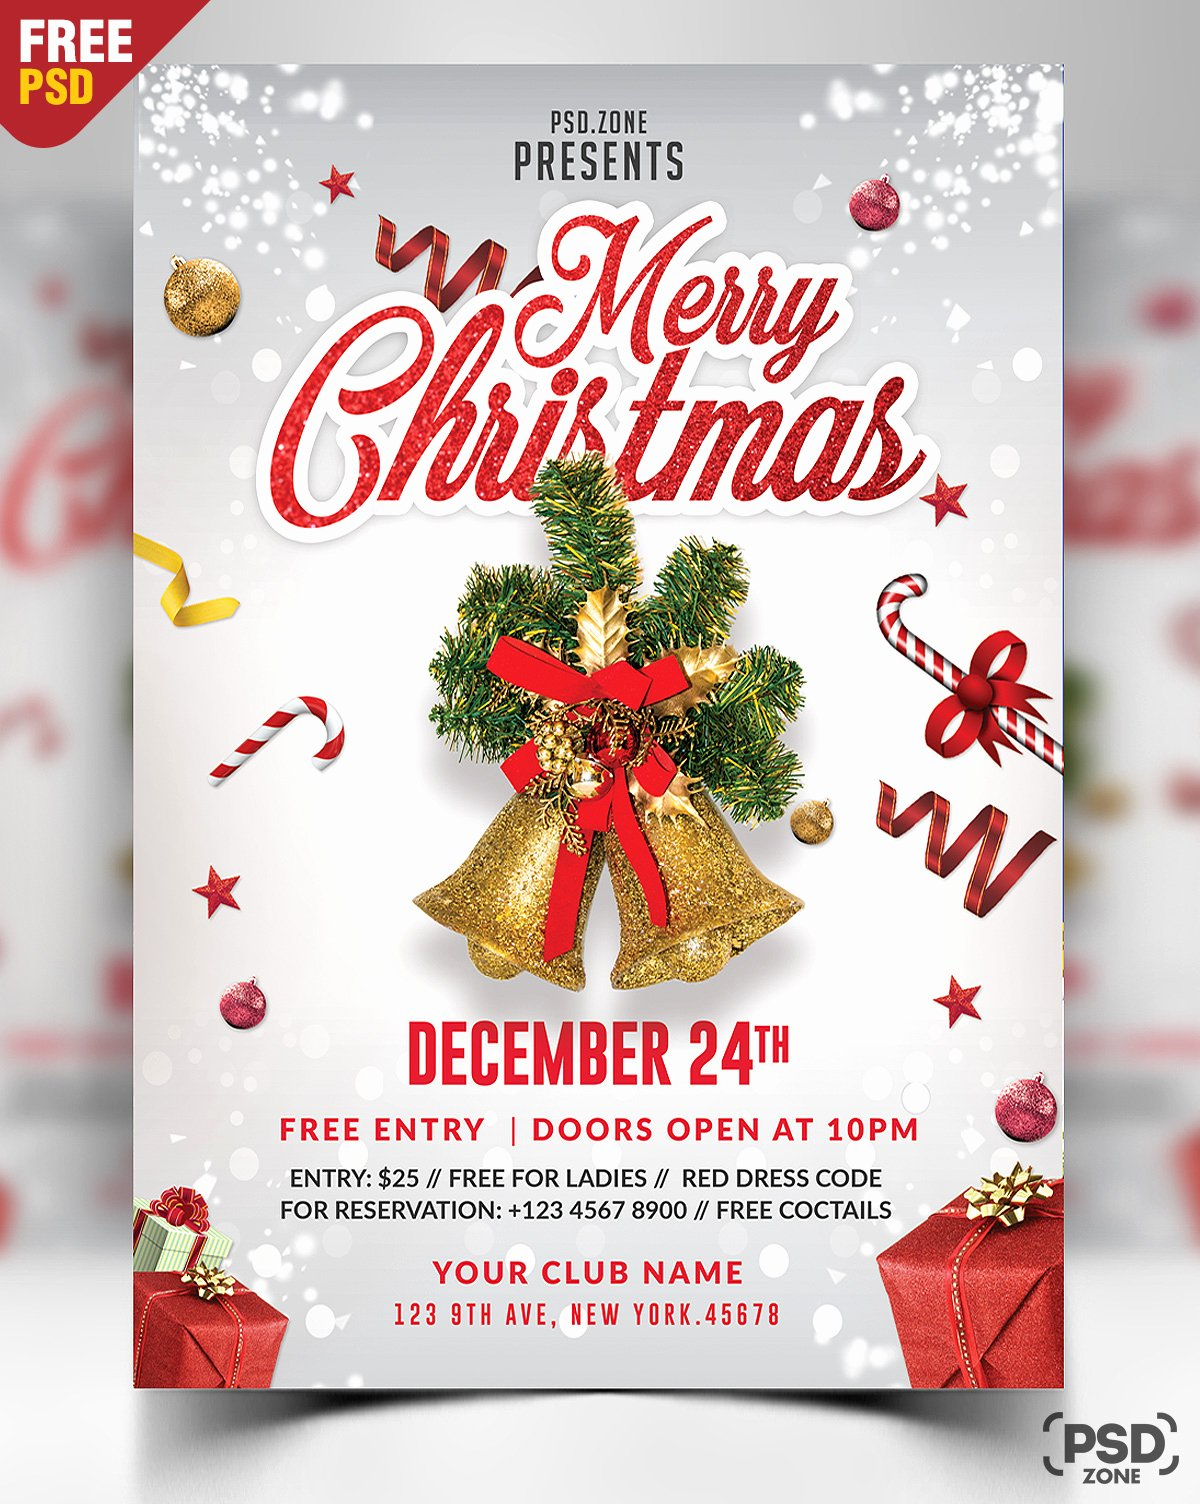 Free Holiday Flyer Template Elegant 160 Free Christmas Design Downloads Perfect for Your